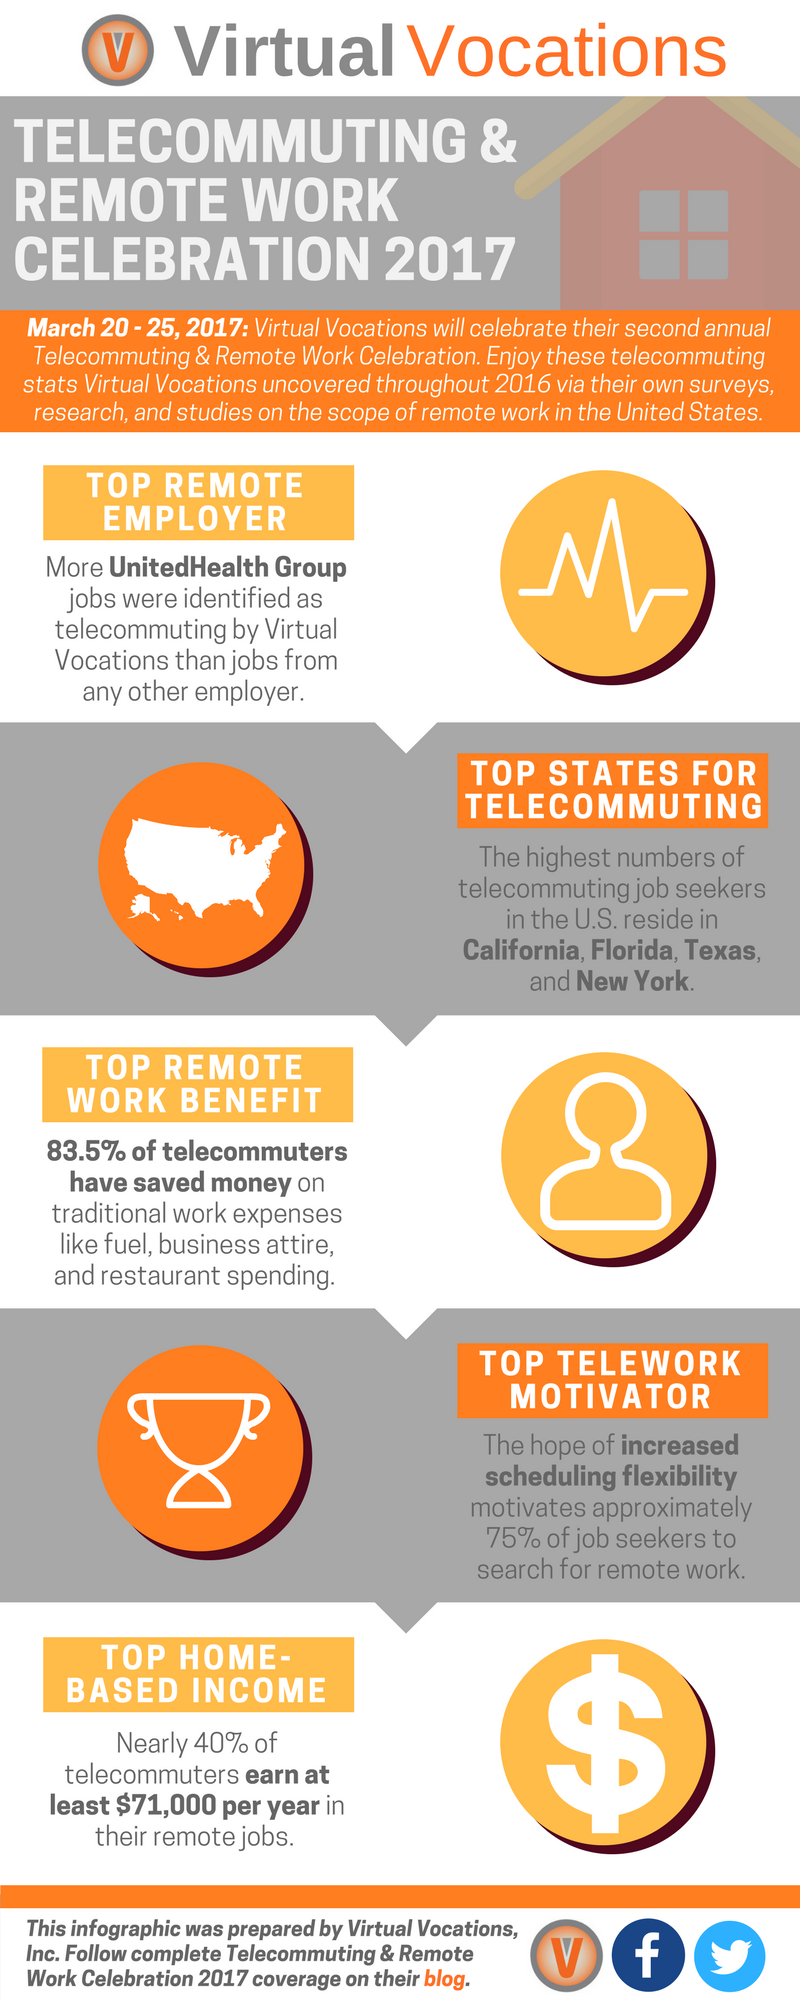 virtual vocations announces telecommuting and remote work virtual vocations announces 2017 telecommuting and remote work celebration